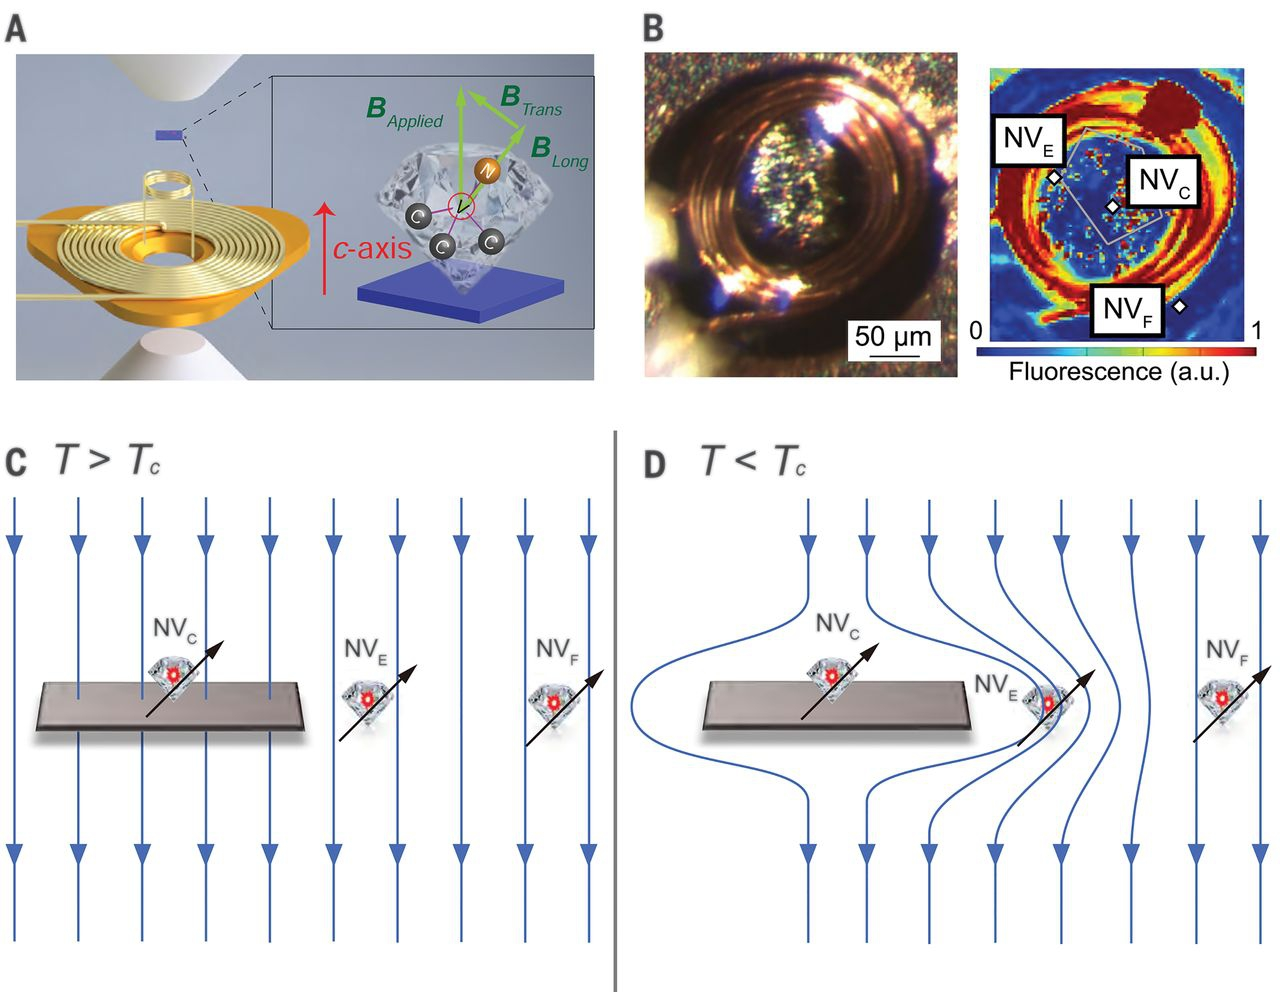 Schematic illustration of experimental configurations and detection concepts. (A) An exploded view of the pressure cell design. The sample (blue) is located in the high-pressure chamber together with a collection of diamond particles. Each diamond particle is a sensitive local field sensor.  (B) (Left) Photograph of the microcoil with sample on top of the anvil. (Right) Fluorescence image from the confocal scan showing the microcoil and NV centers.